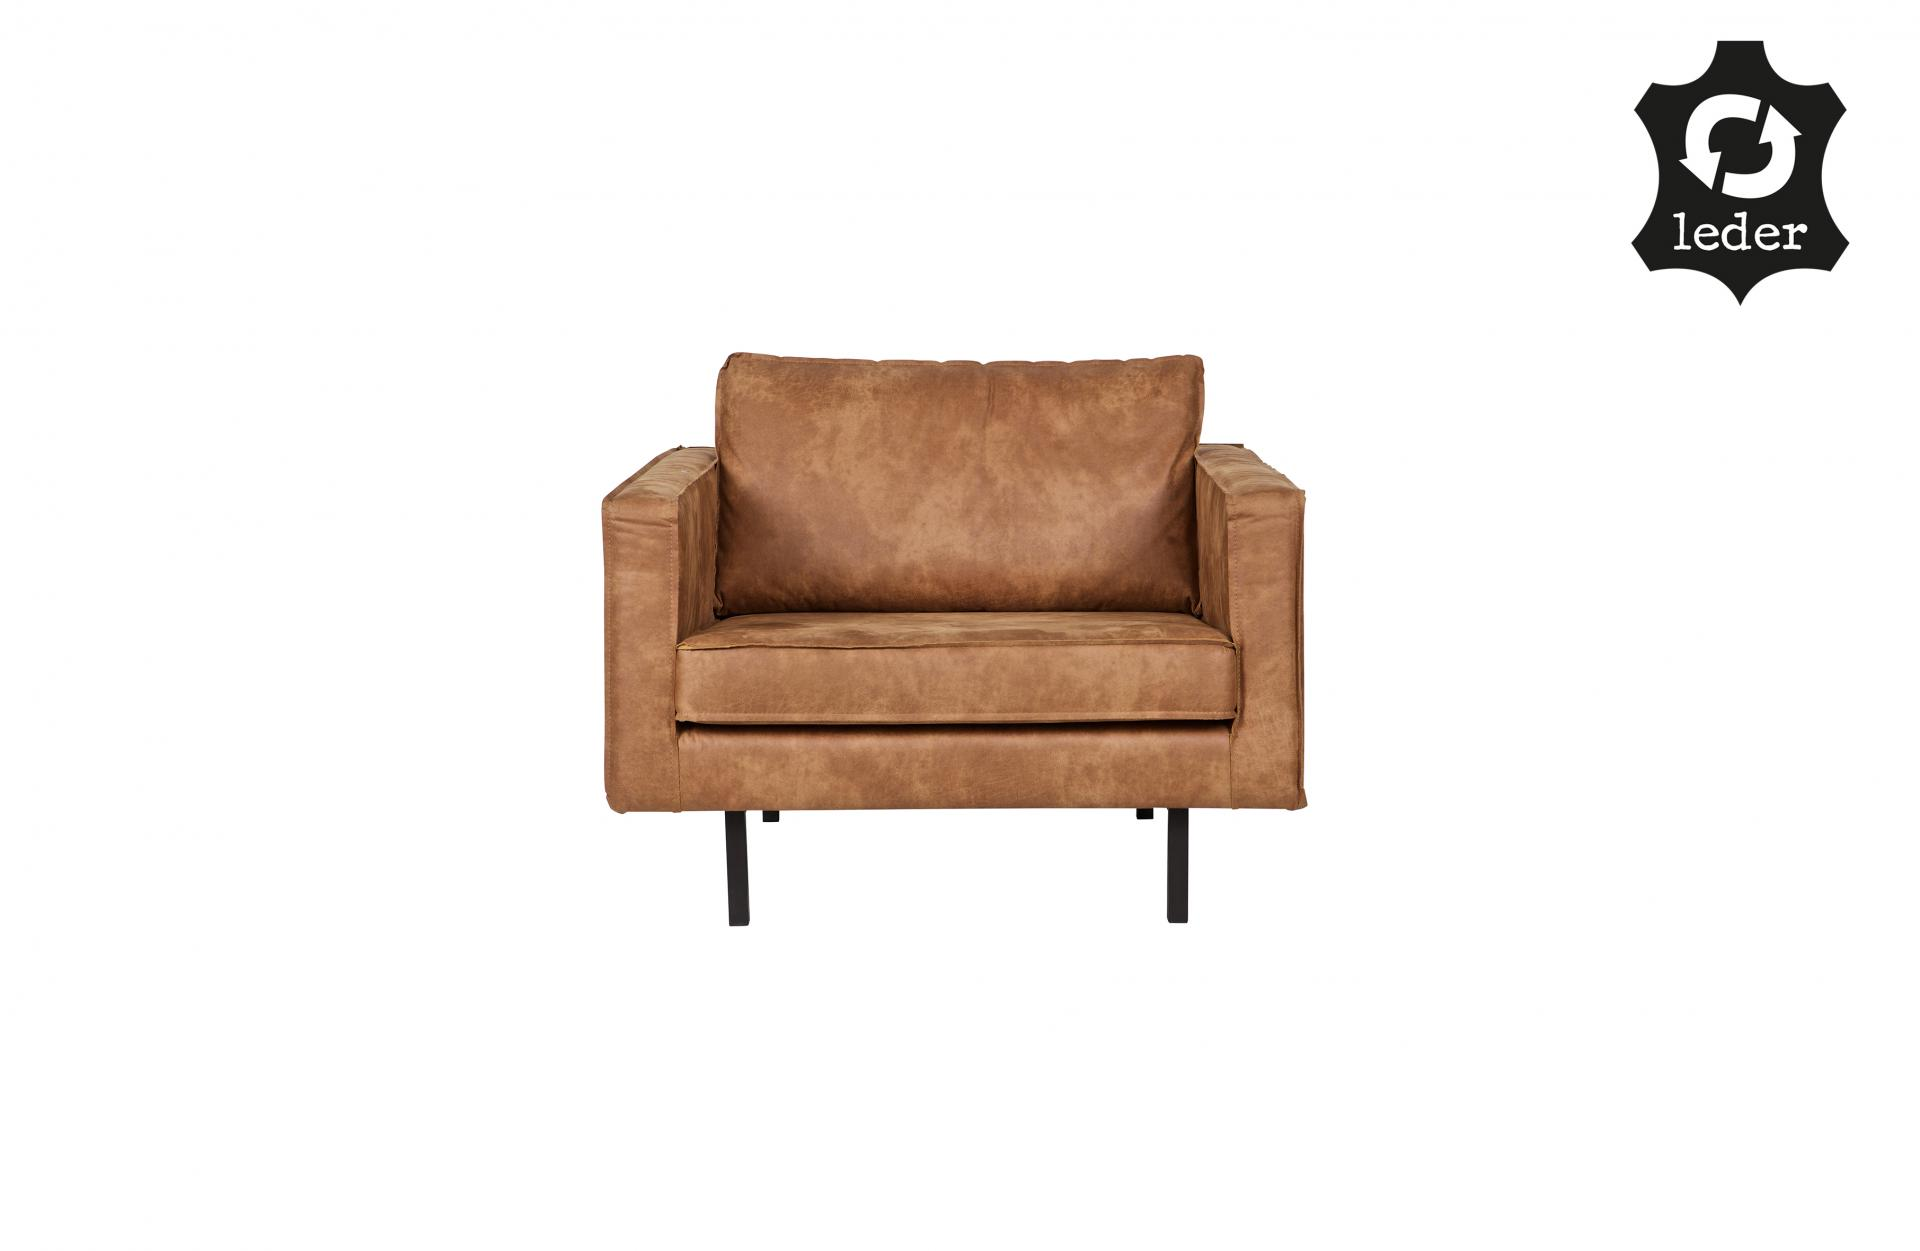 Rodeo fauteuil